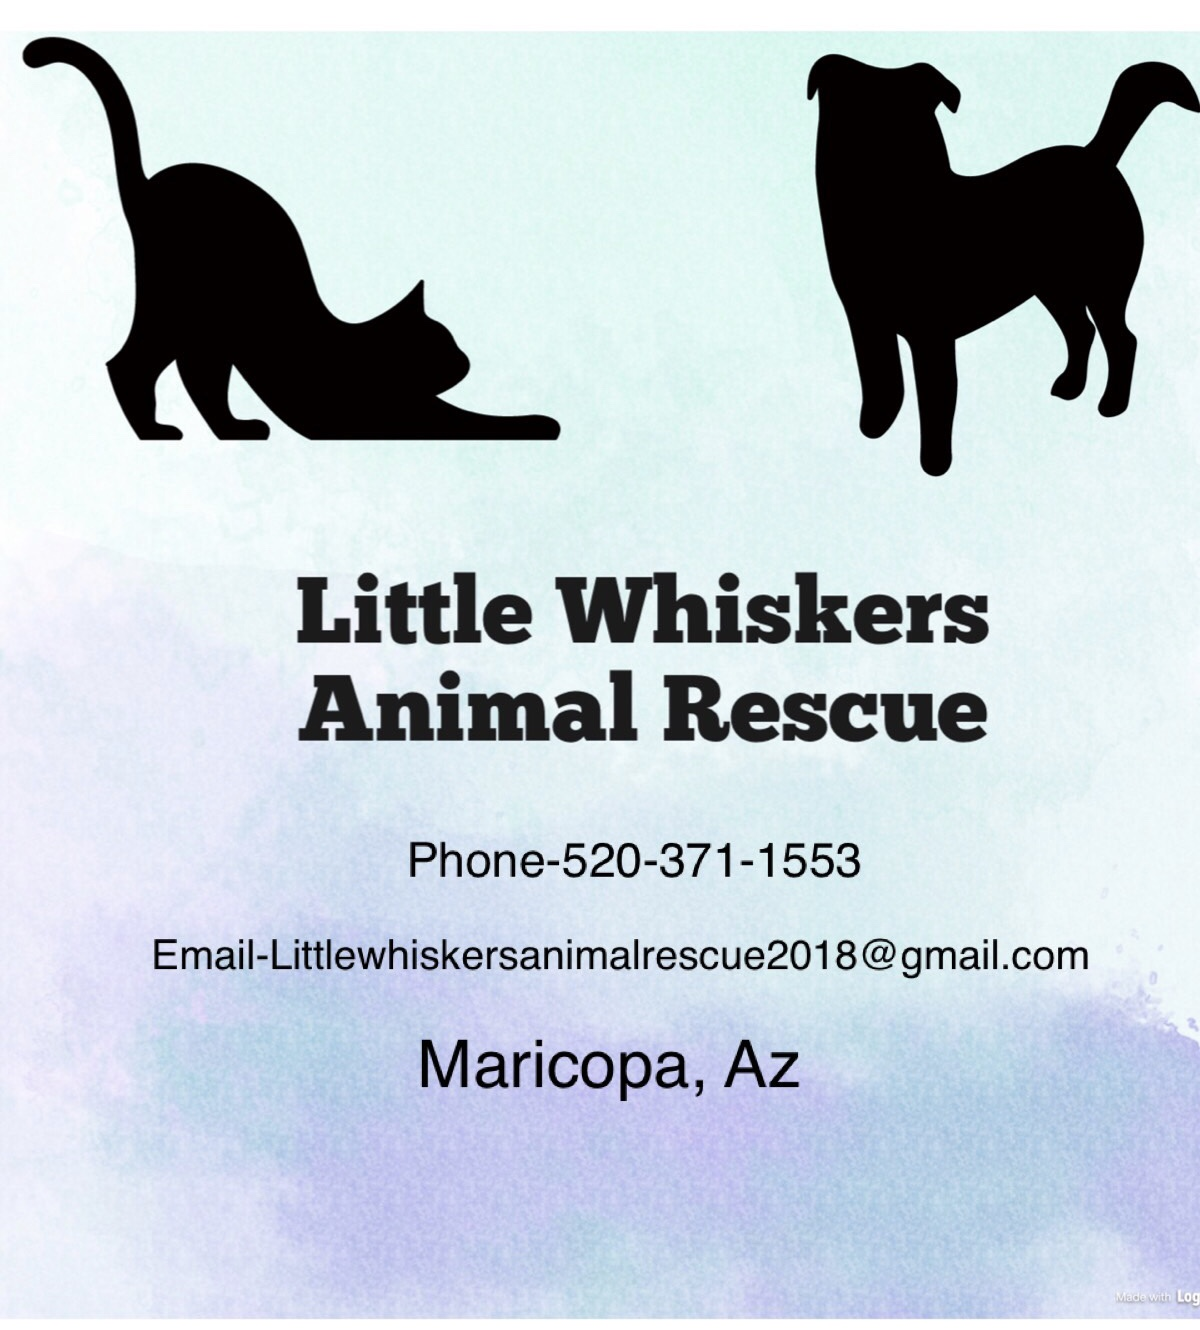 Little Whiskers Animal Rescue